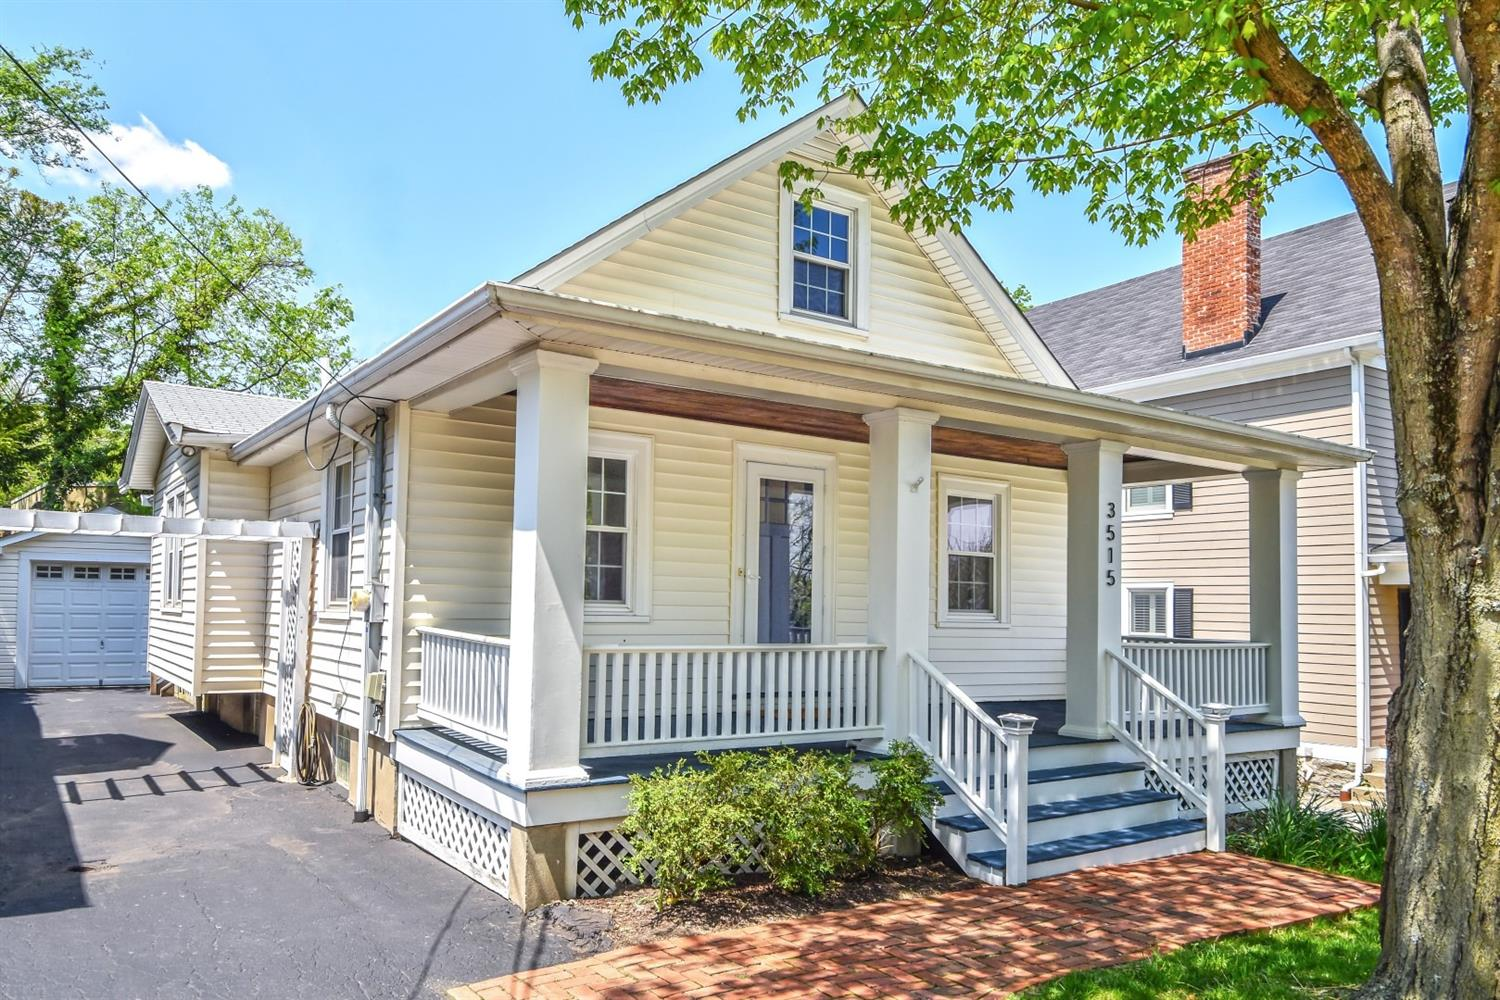 3515 Tarpis Ave, Hyde Park, OH 45208 Listing Details: MLS ...